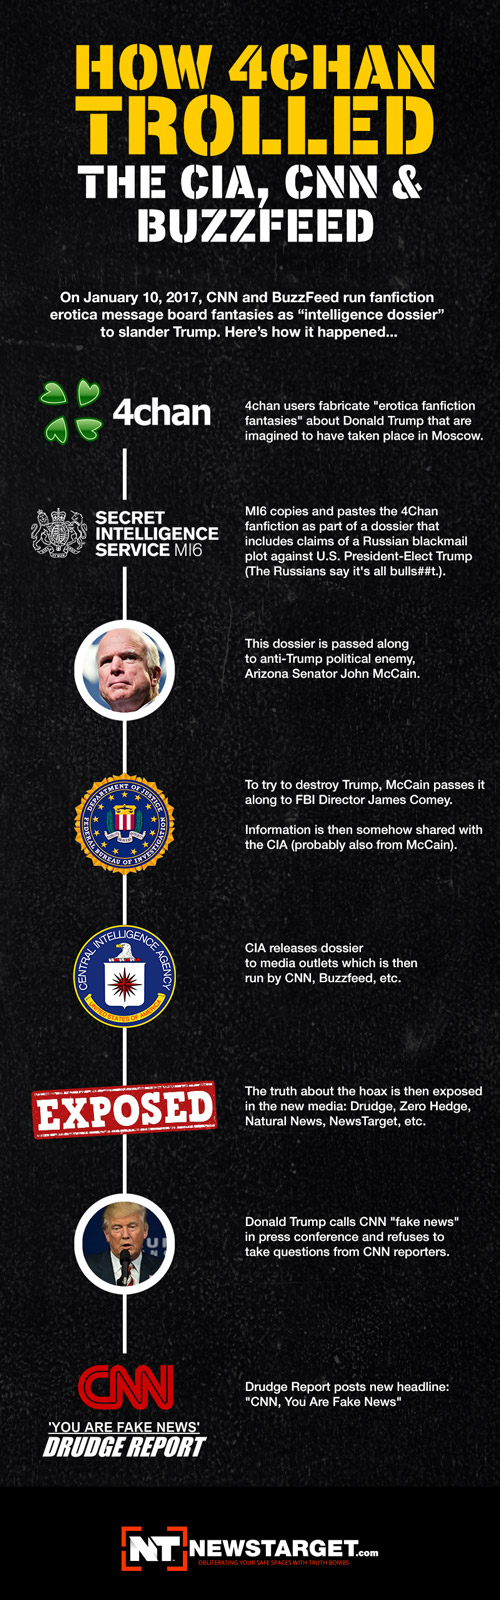 infographic-how-4chan-trolled-cia-cnn-buzzfeed-500